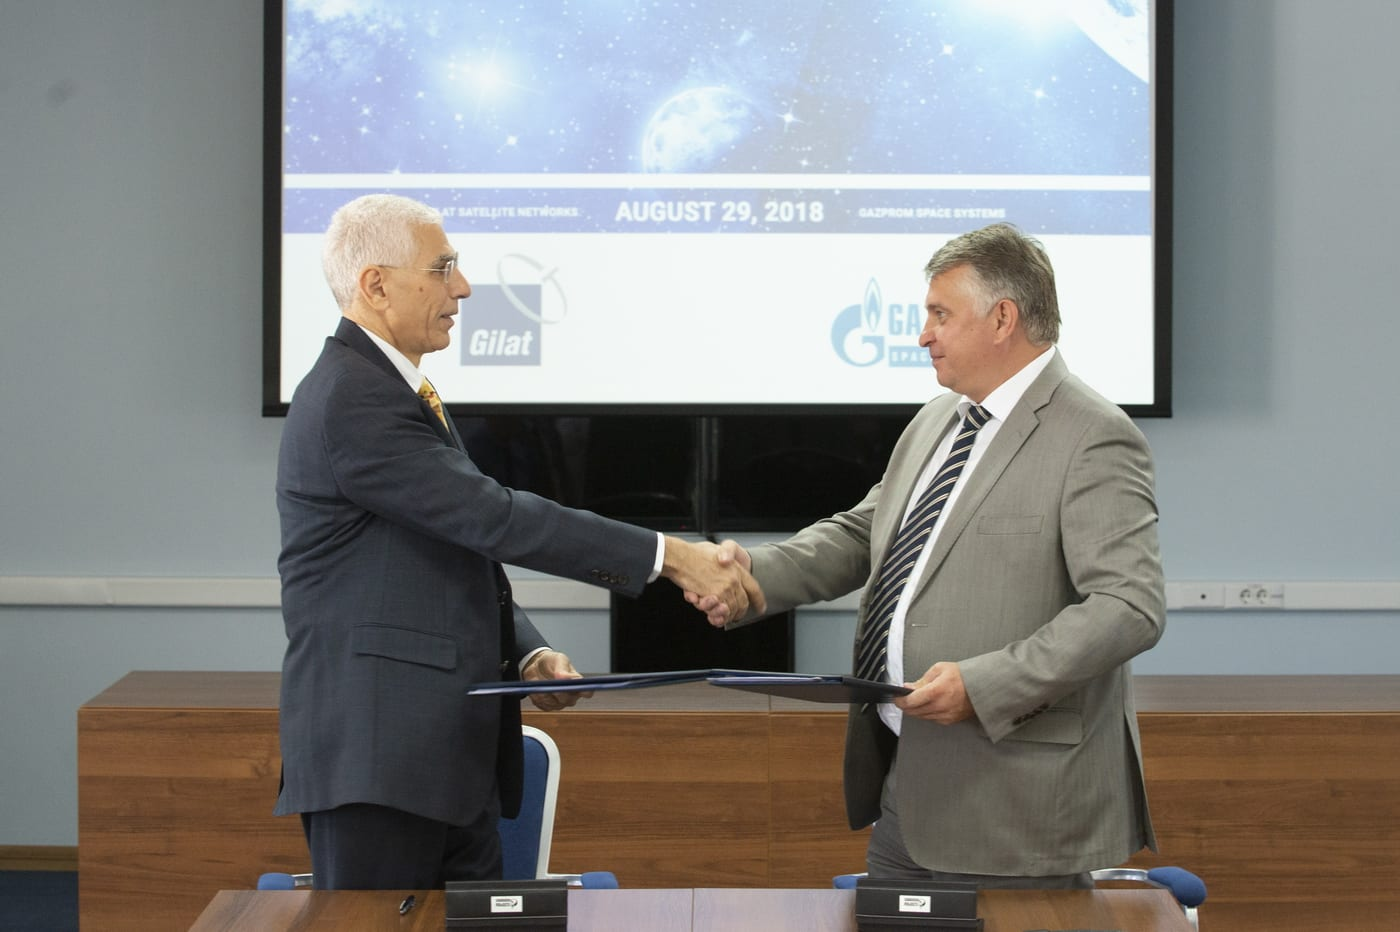 Gazprom Space Systems and Gilat Sign $18M Contract to Provide Broadband Connectivity Across Russia over New Yamal 601 Ka Satellite